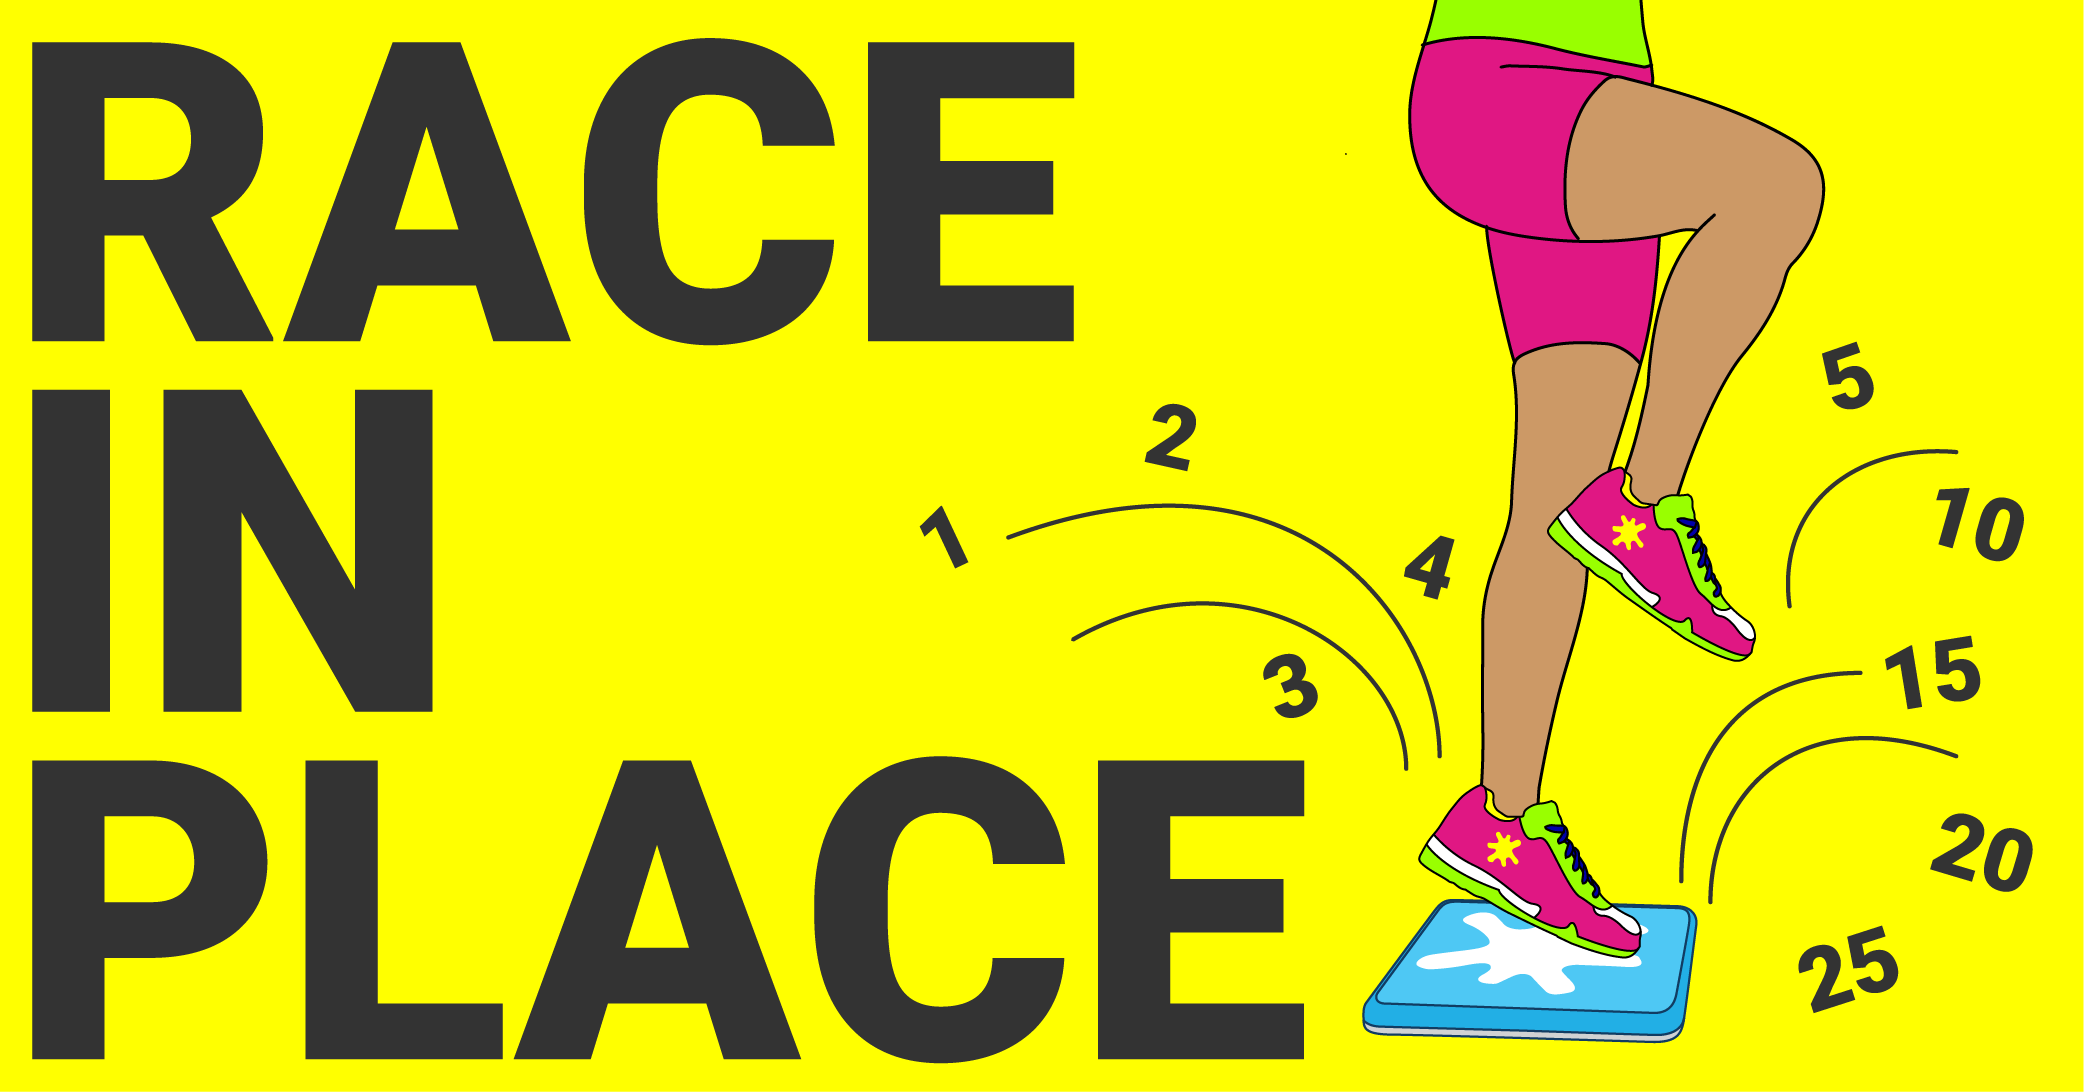 Race in place activity pack